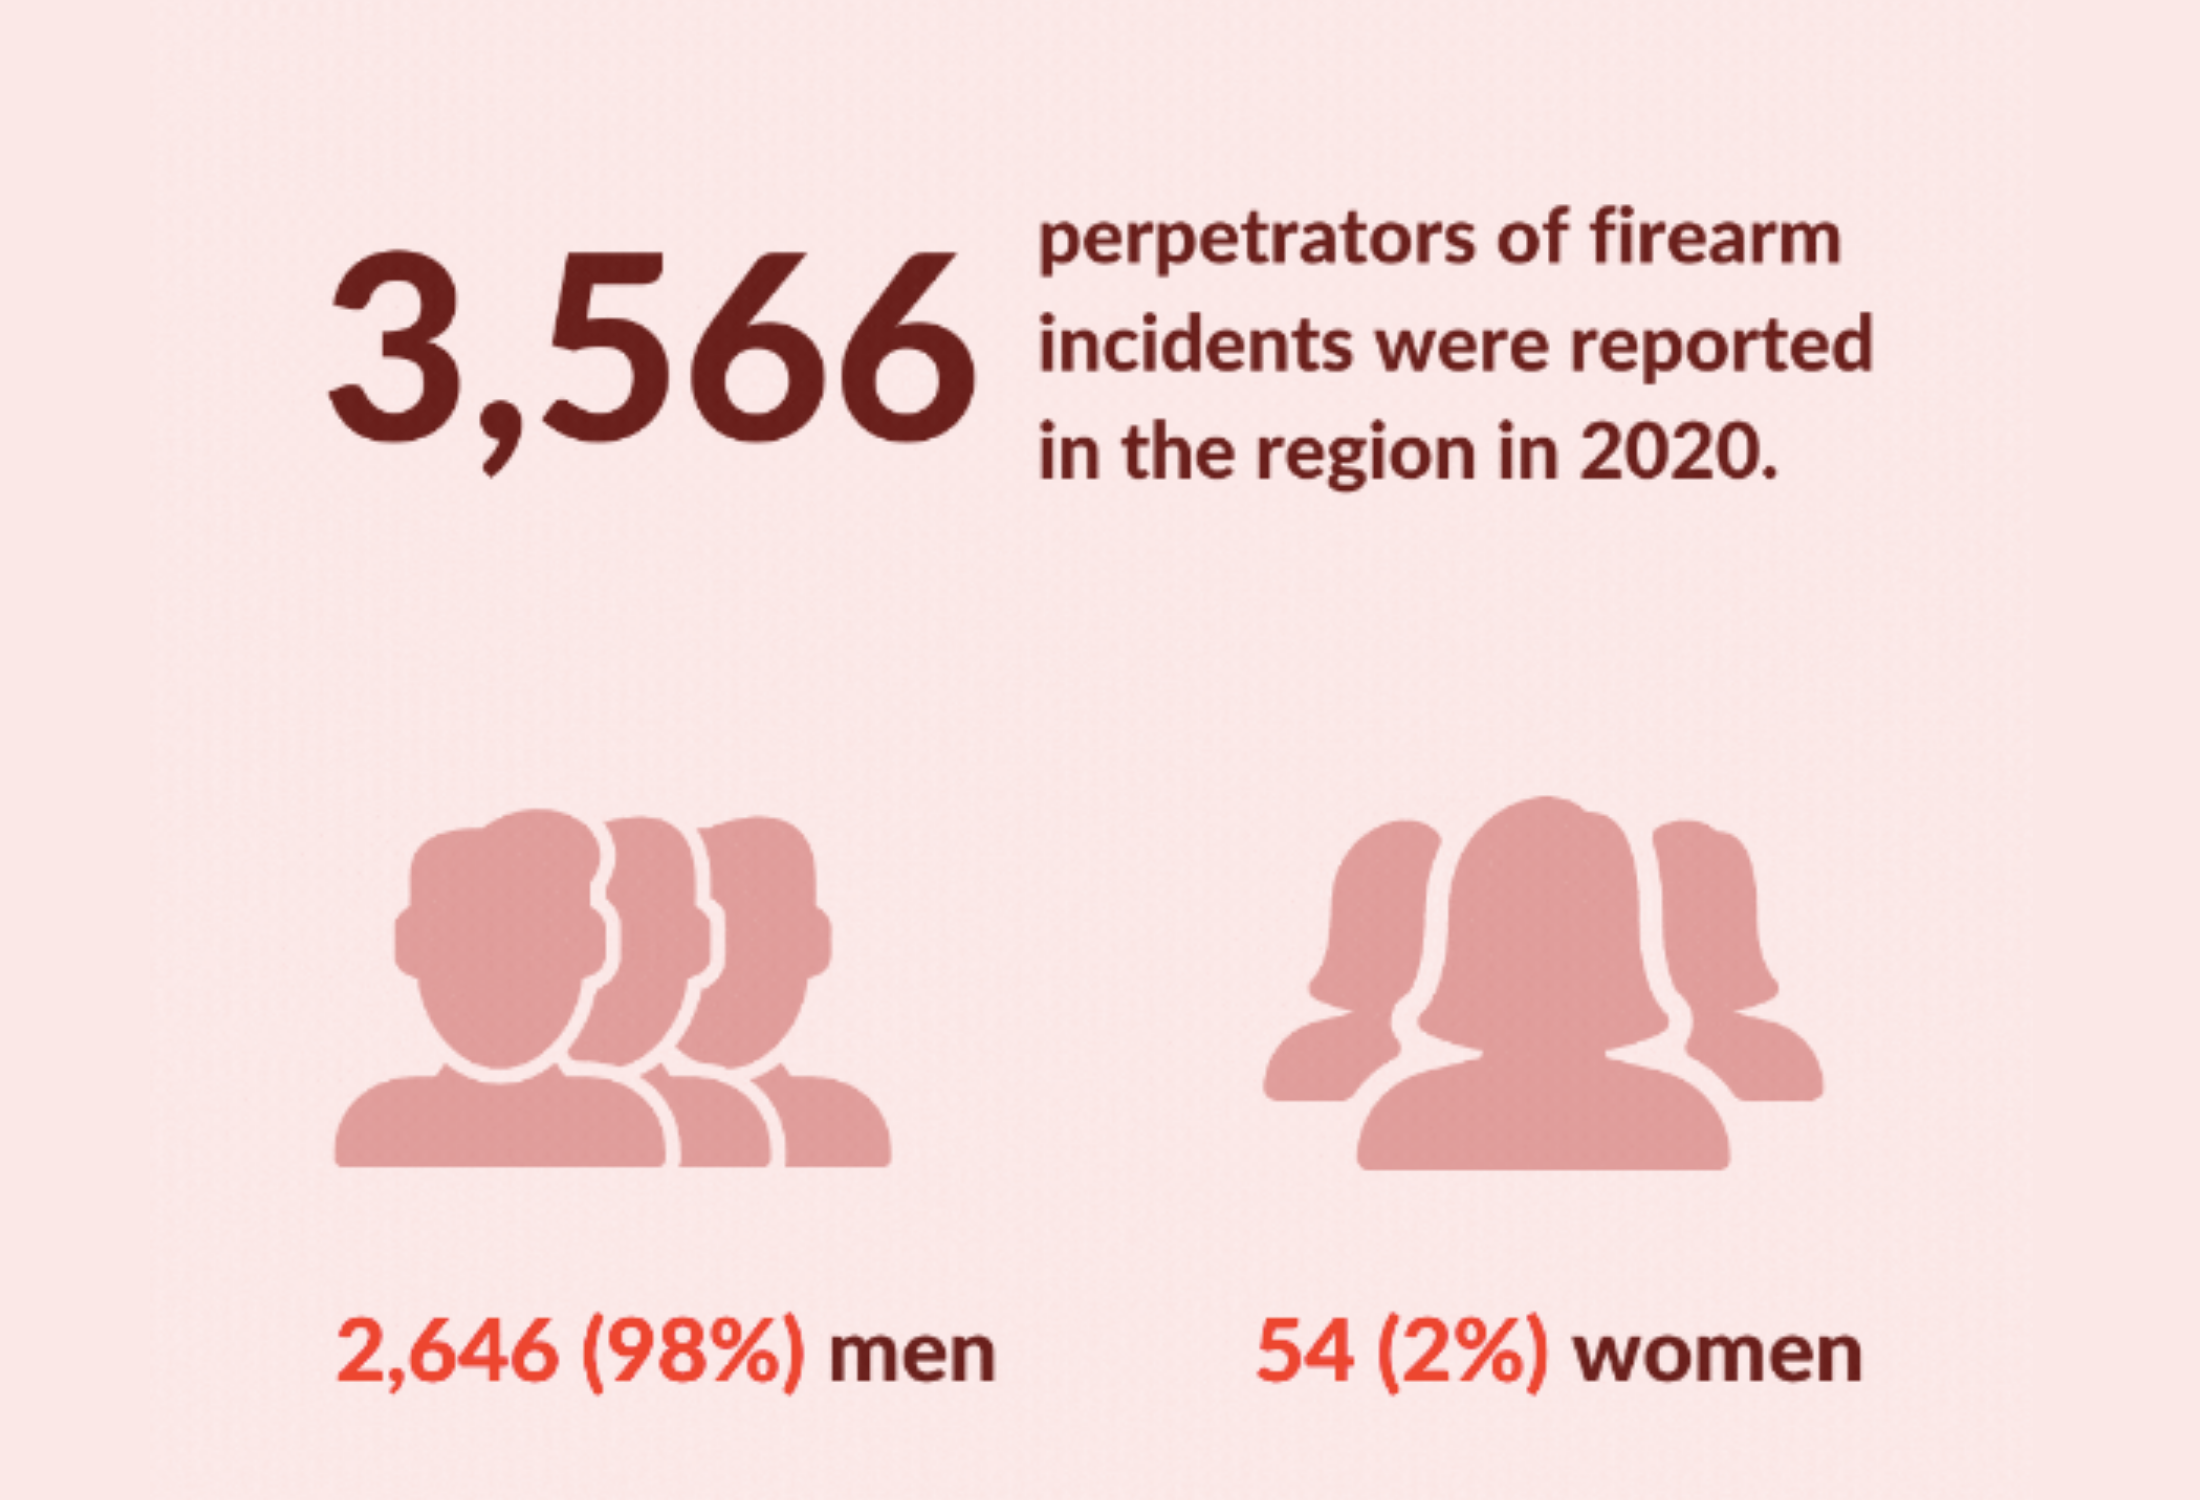 Armed Violence Monitor – Perpetrators of Firearm Incidents in South East Europe in 2020